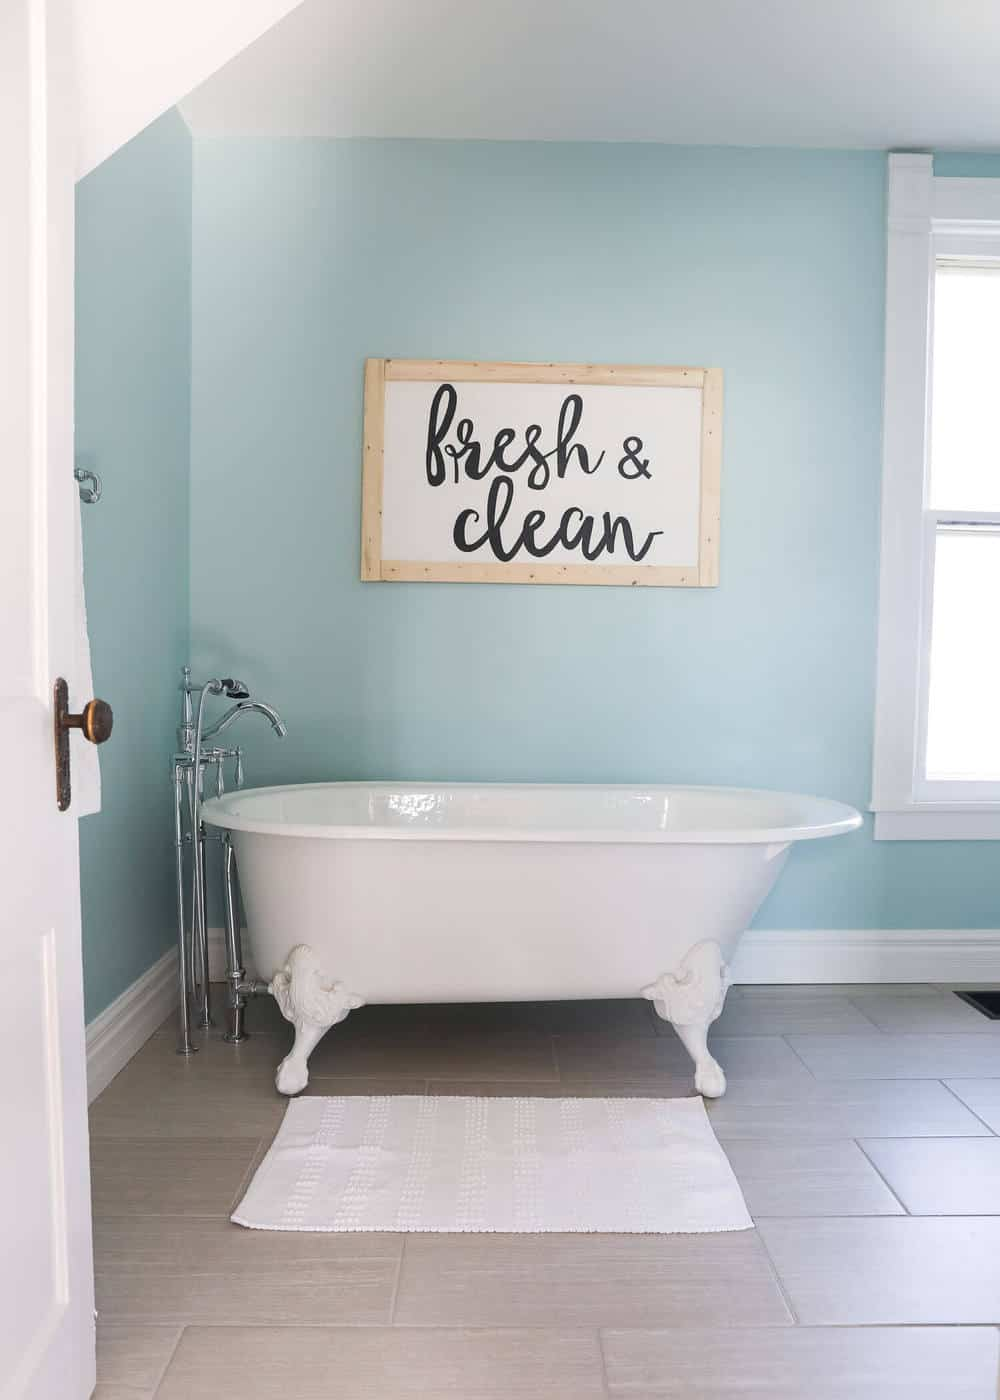 Fixer upper bathroom before and afters i heart nap time for Bathroom photos